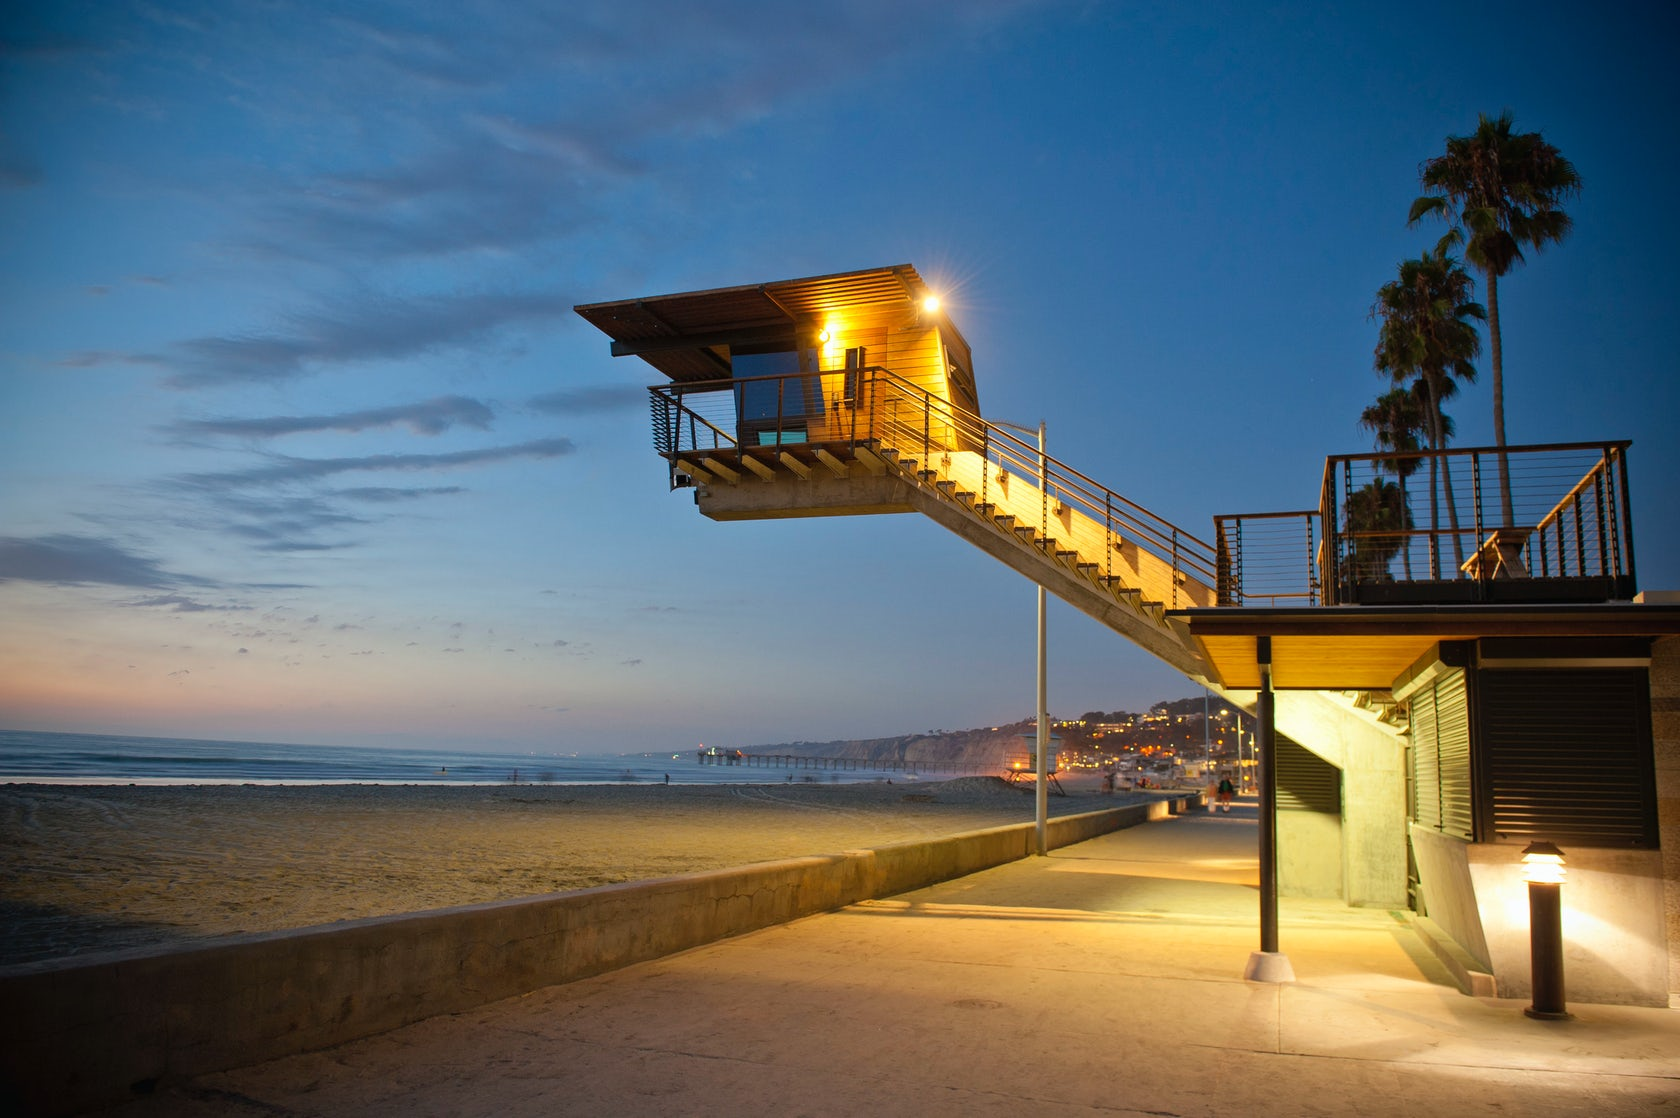 La Jolla Shores Lifeguard Station Architizer